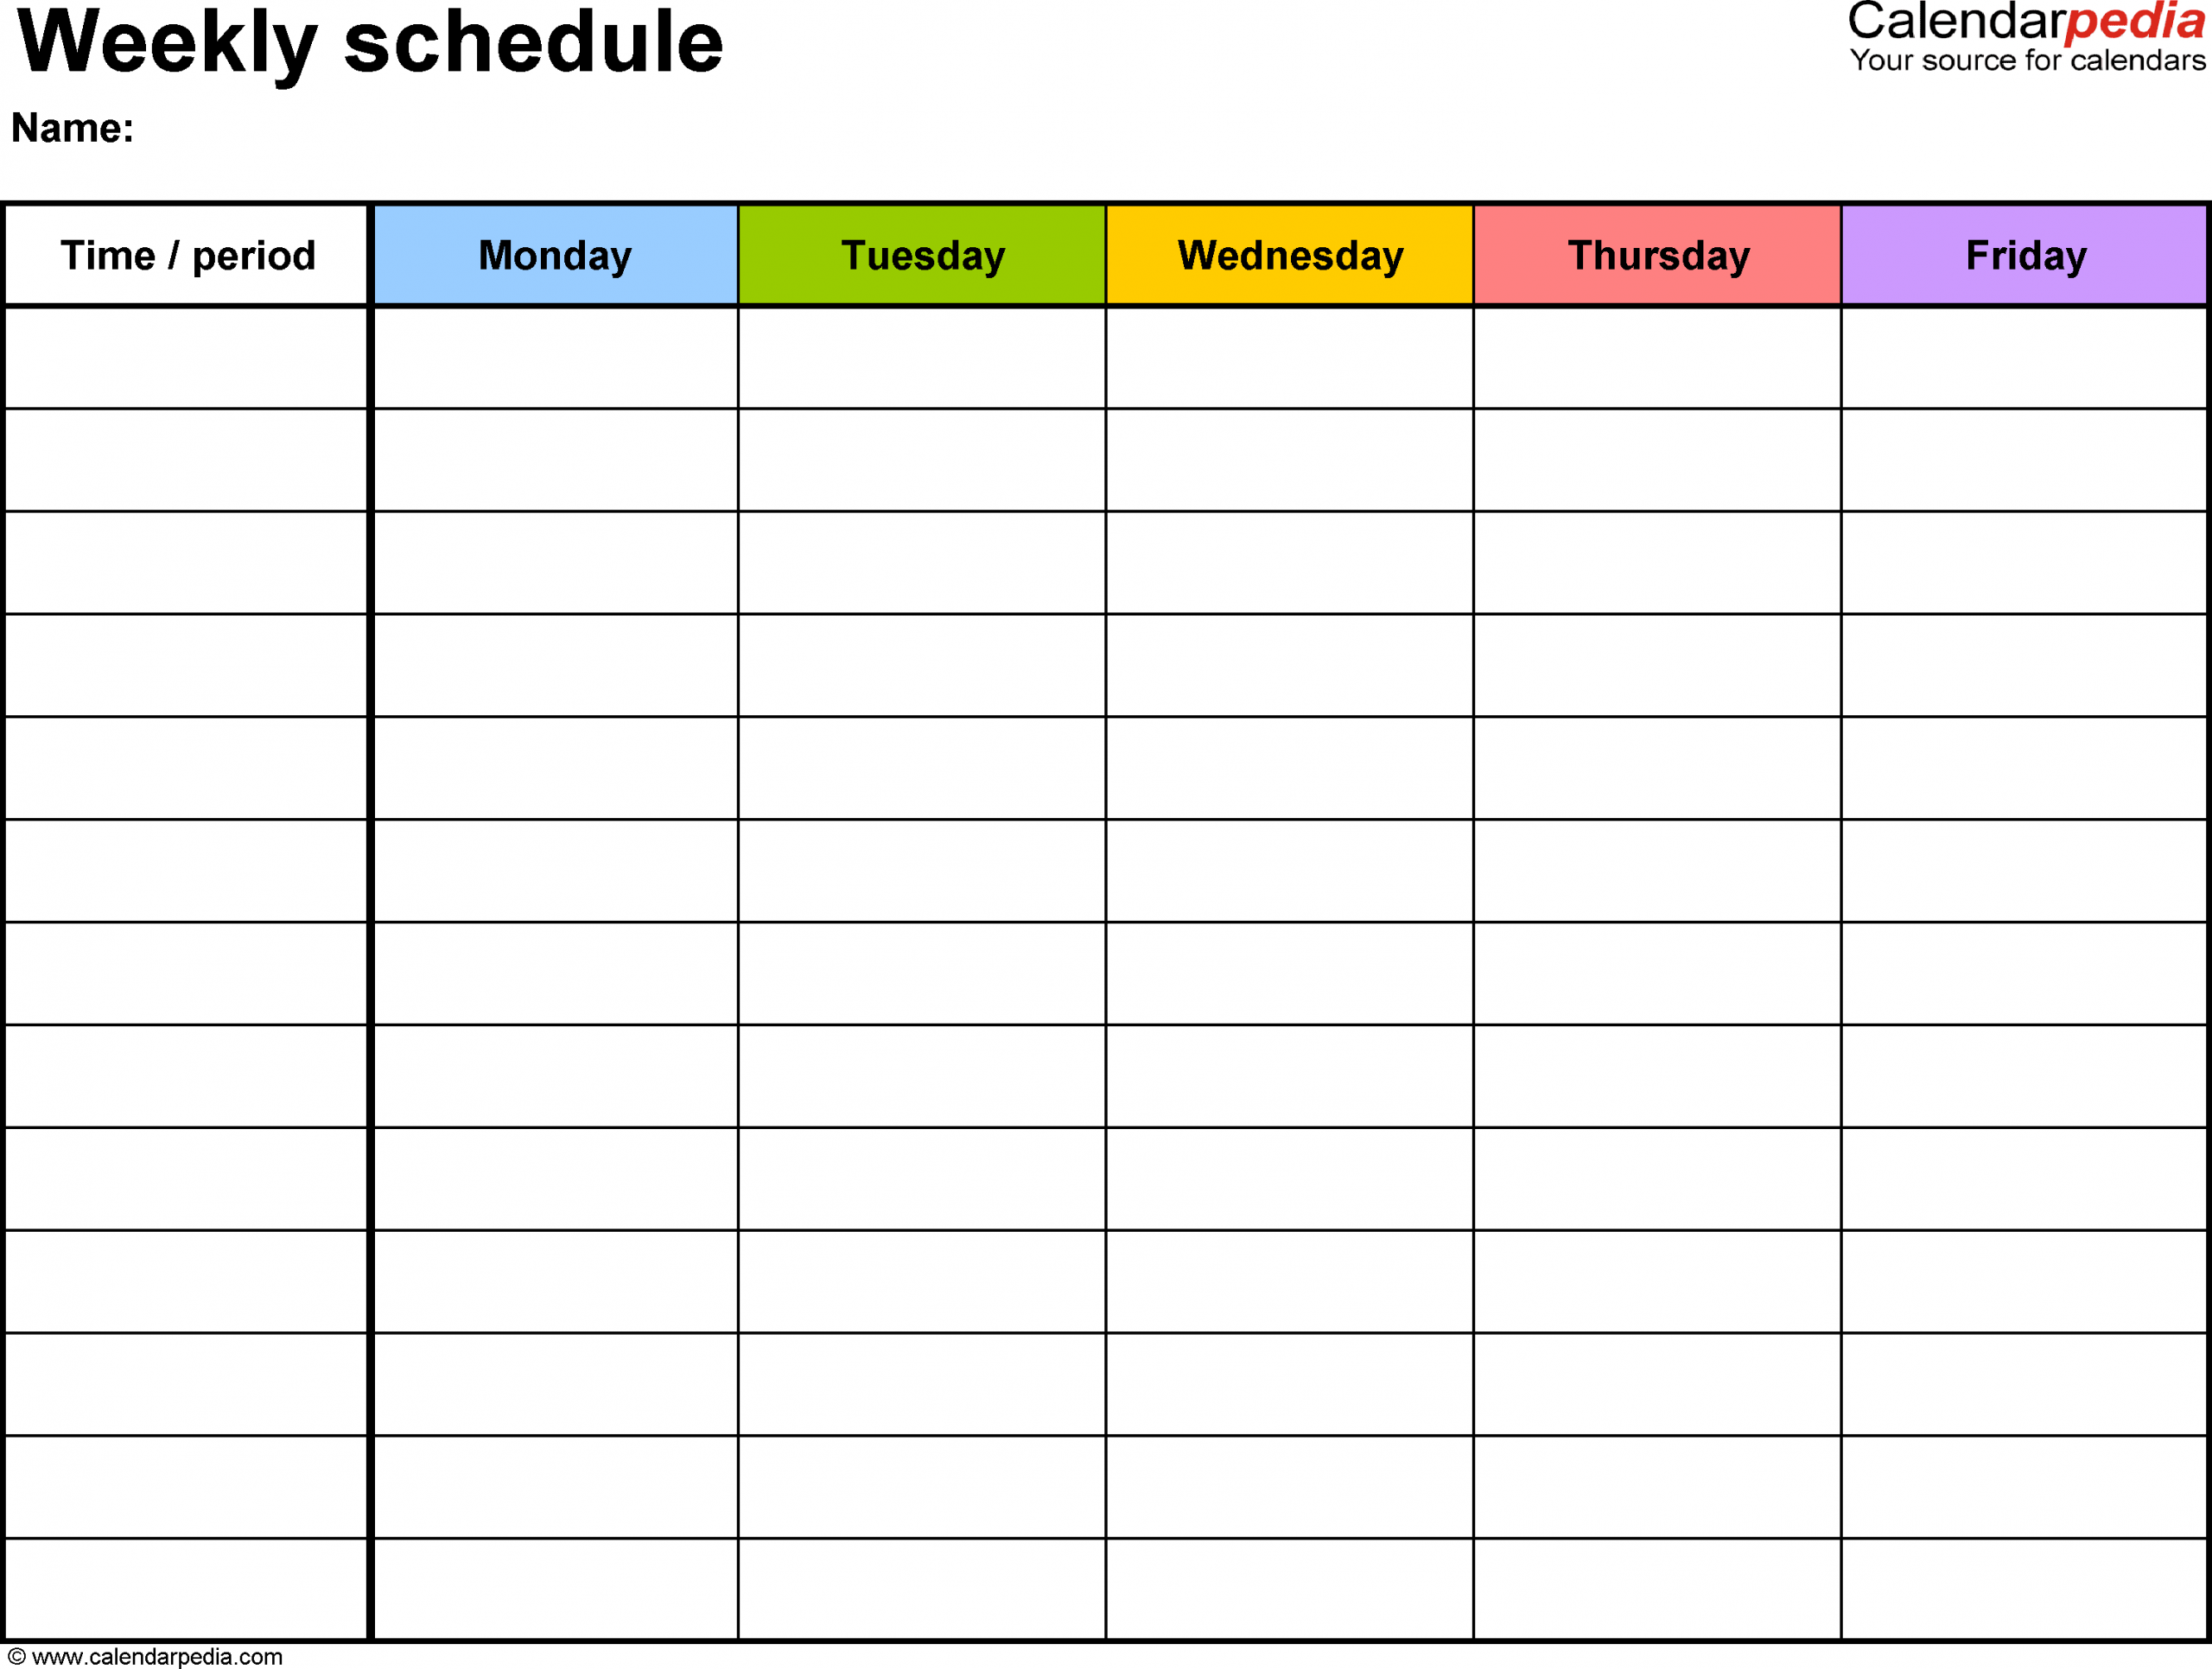 Weekly Calendar Template Fotolip Rich Image And